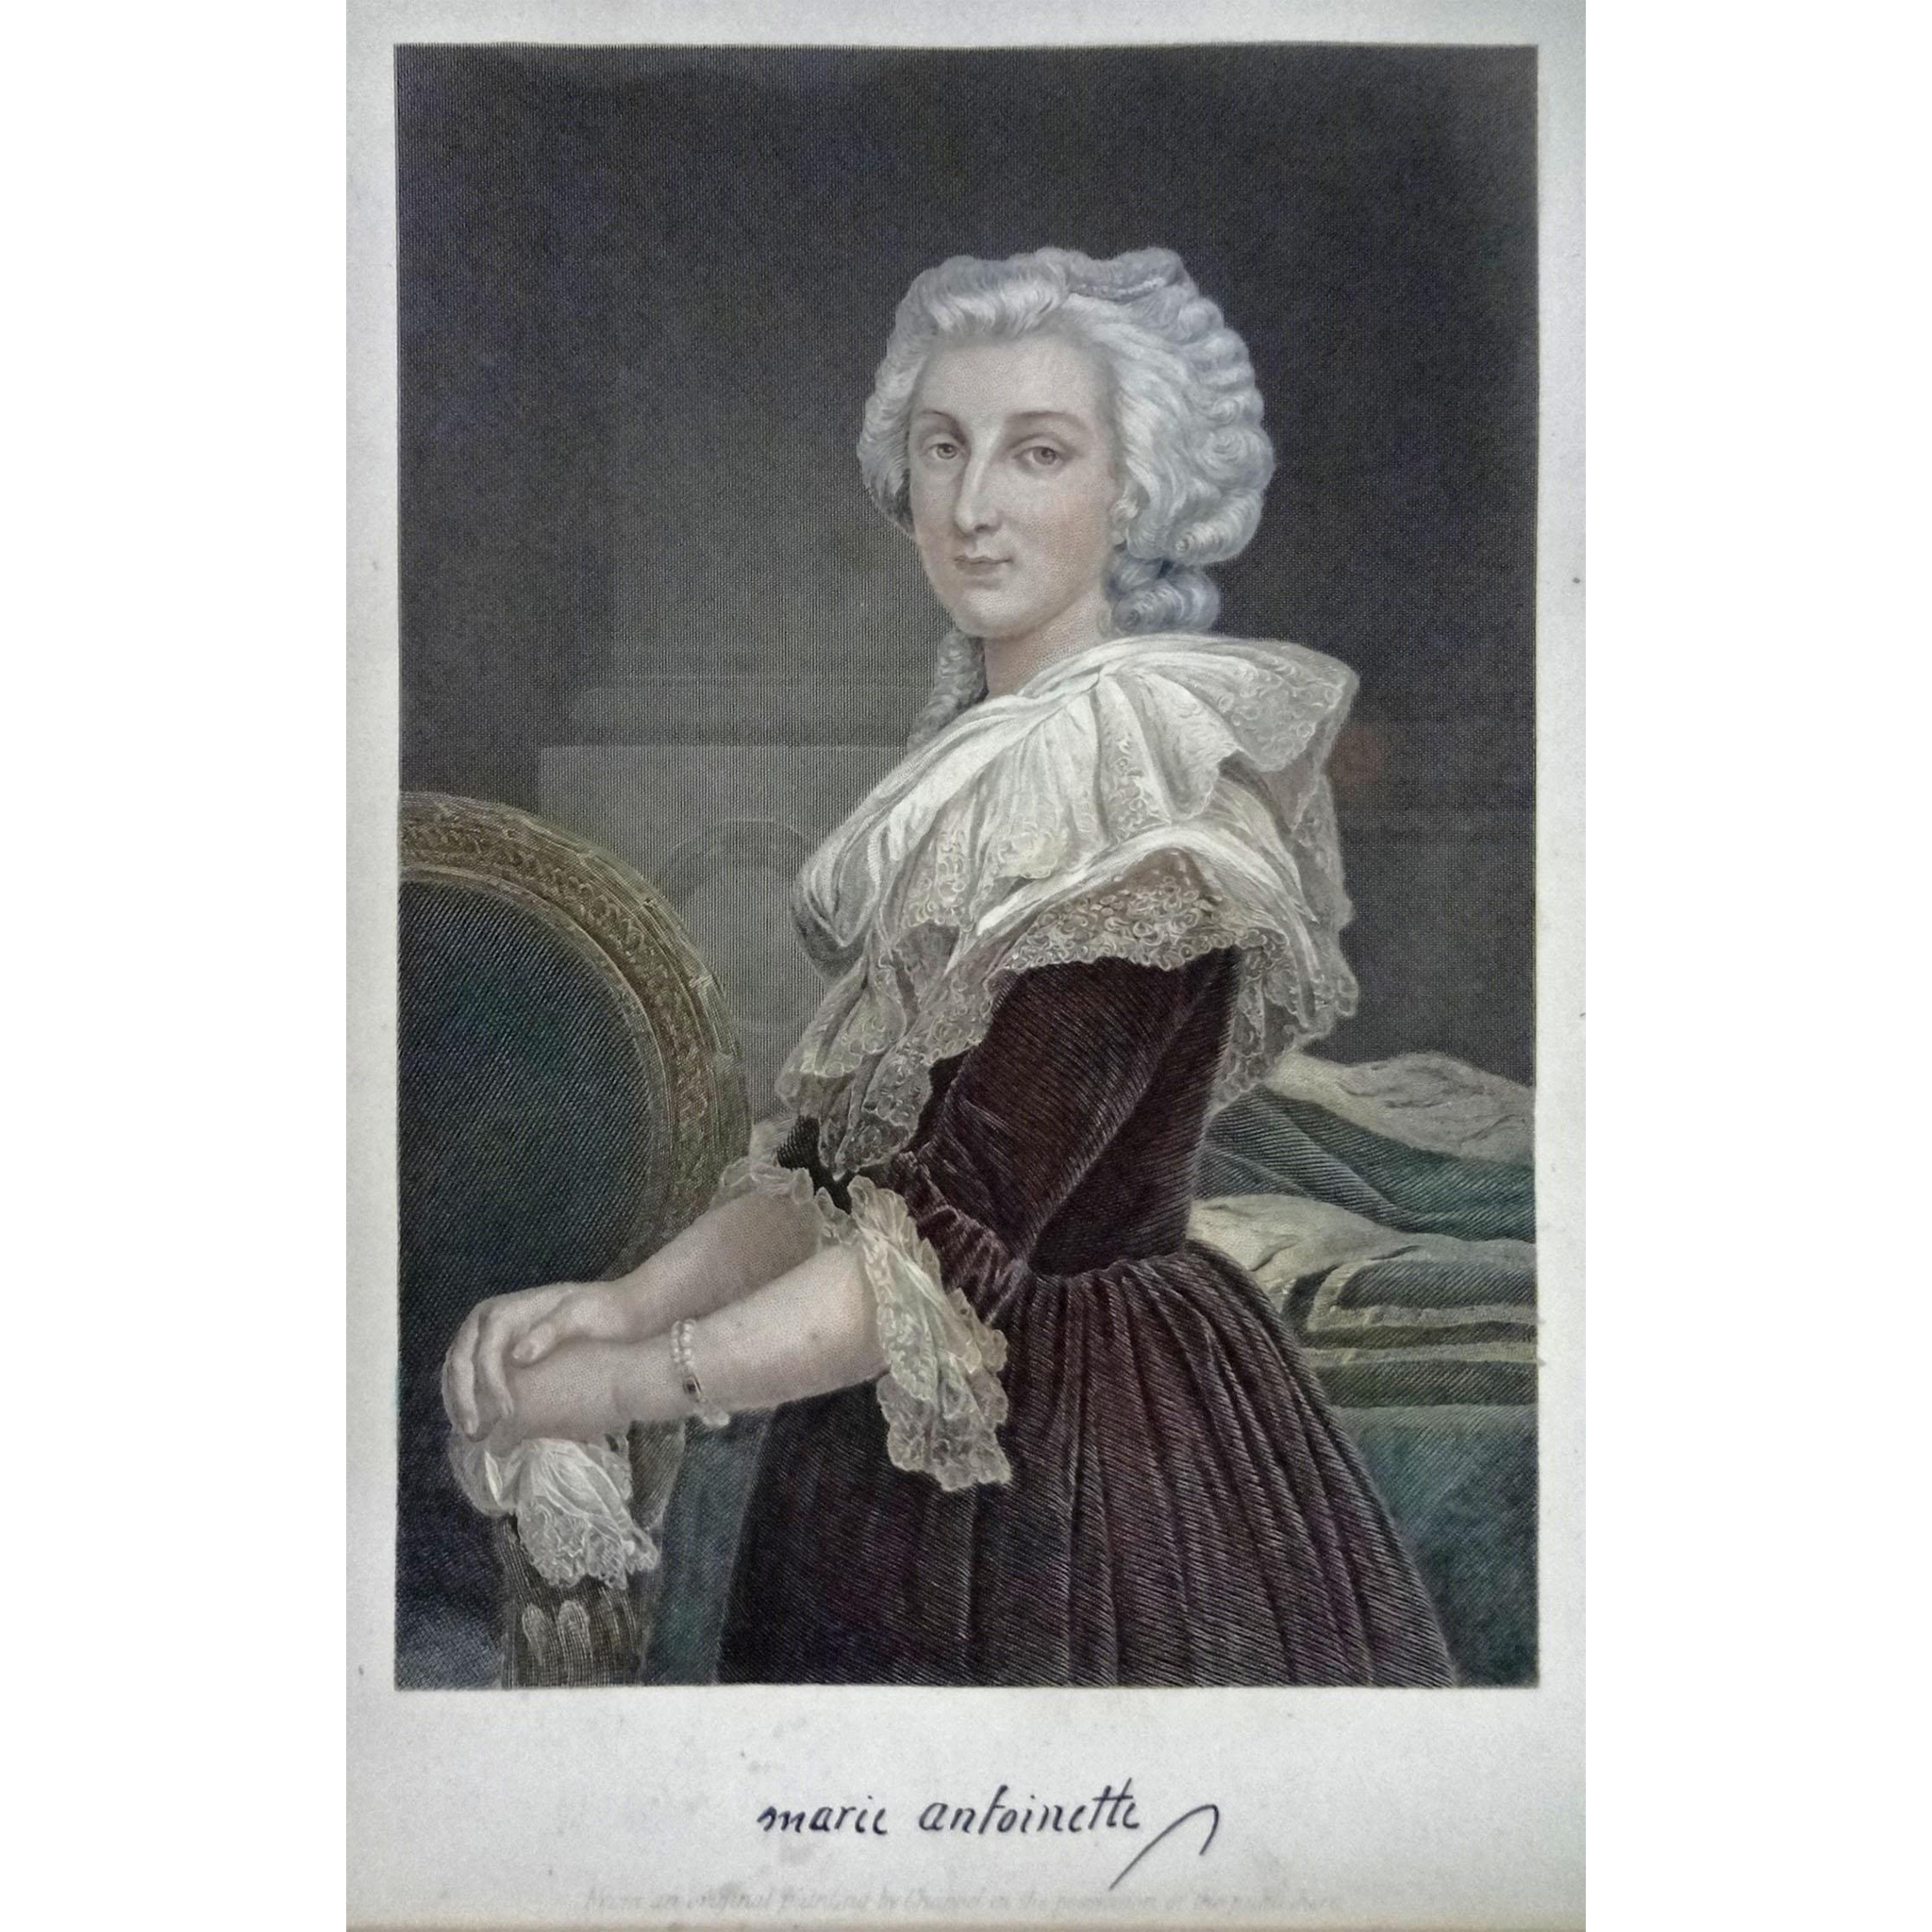 Marie Antoinette Engraving after Alonzo Chappel - 19th Century, USA